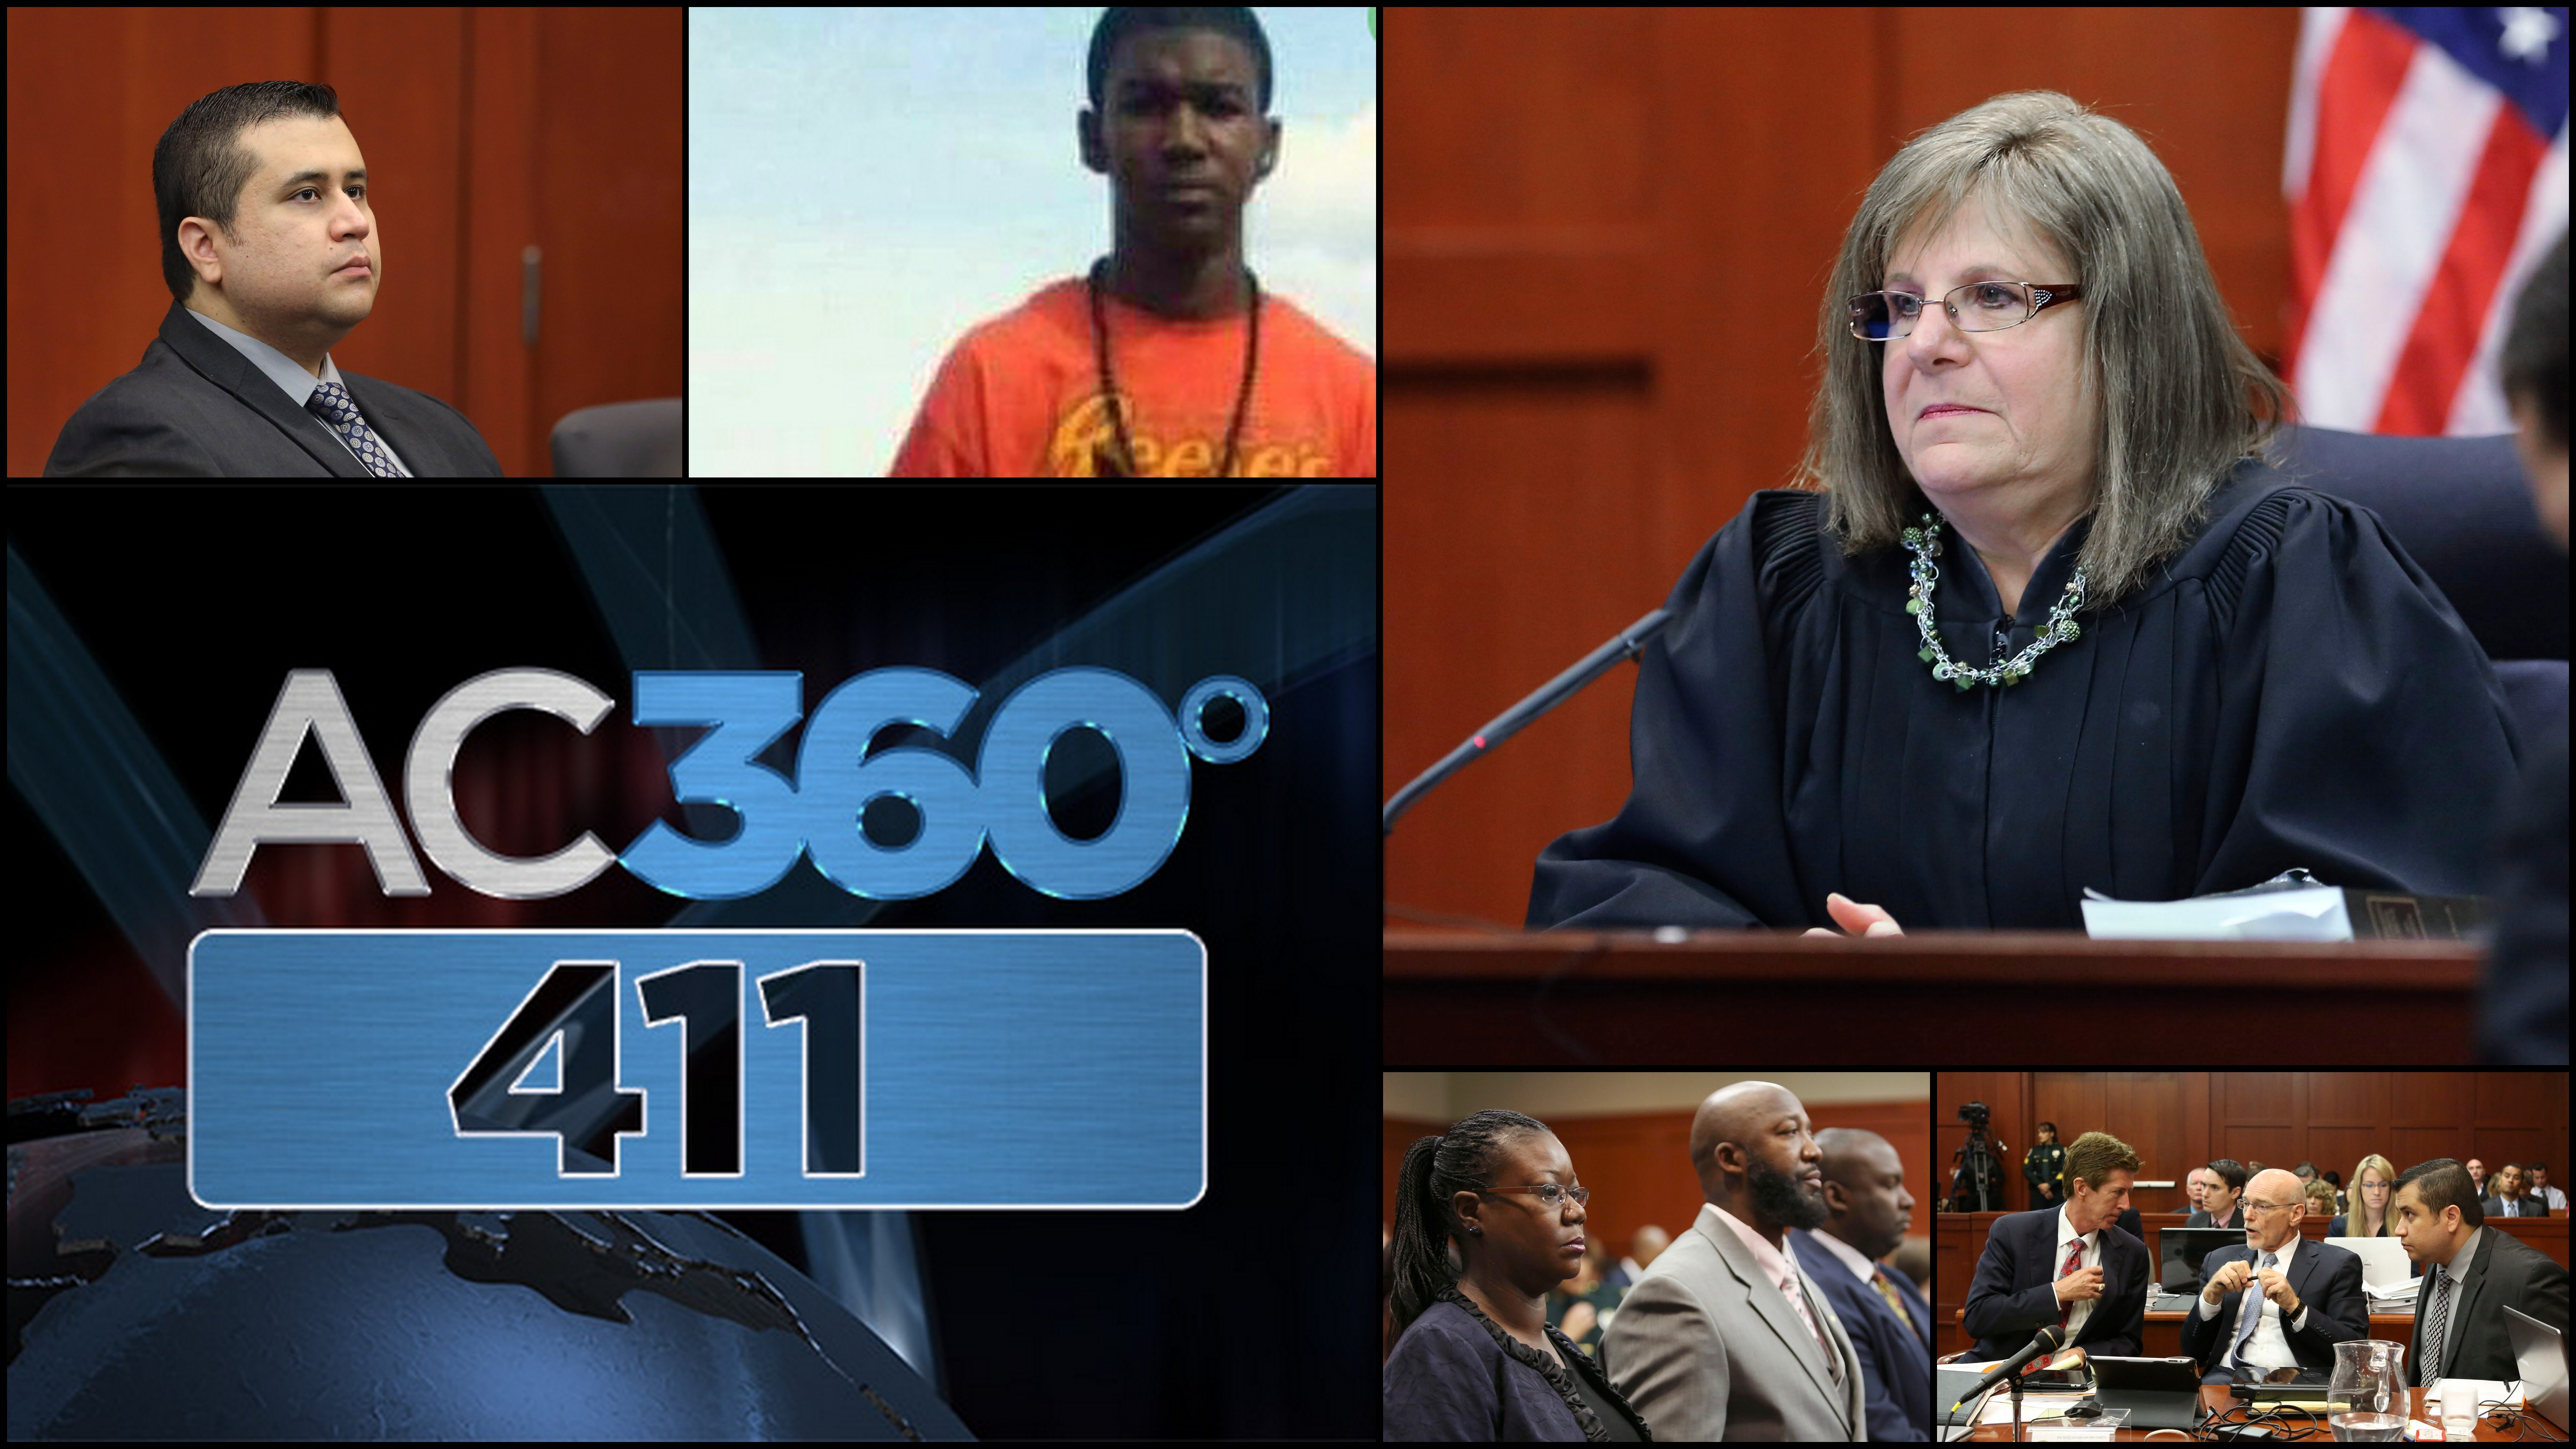 AC360 411: George Zimmerman Trial